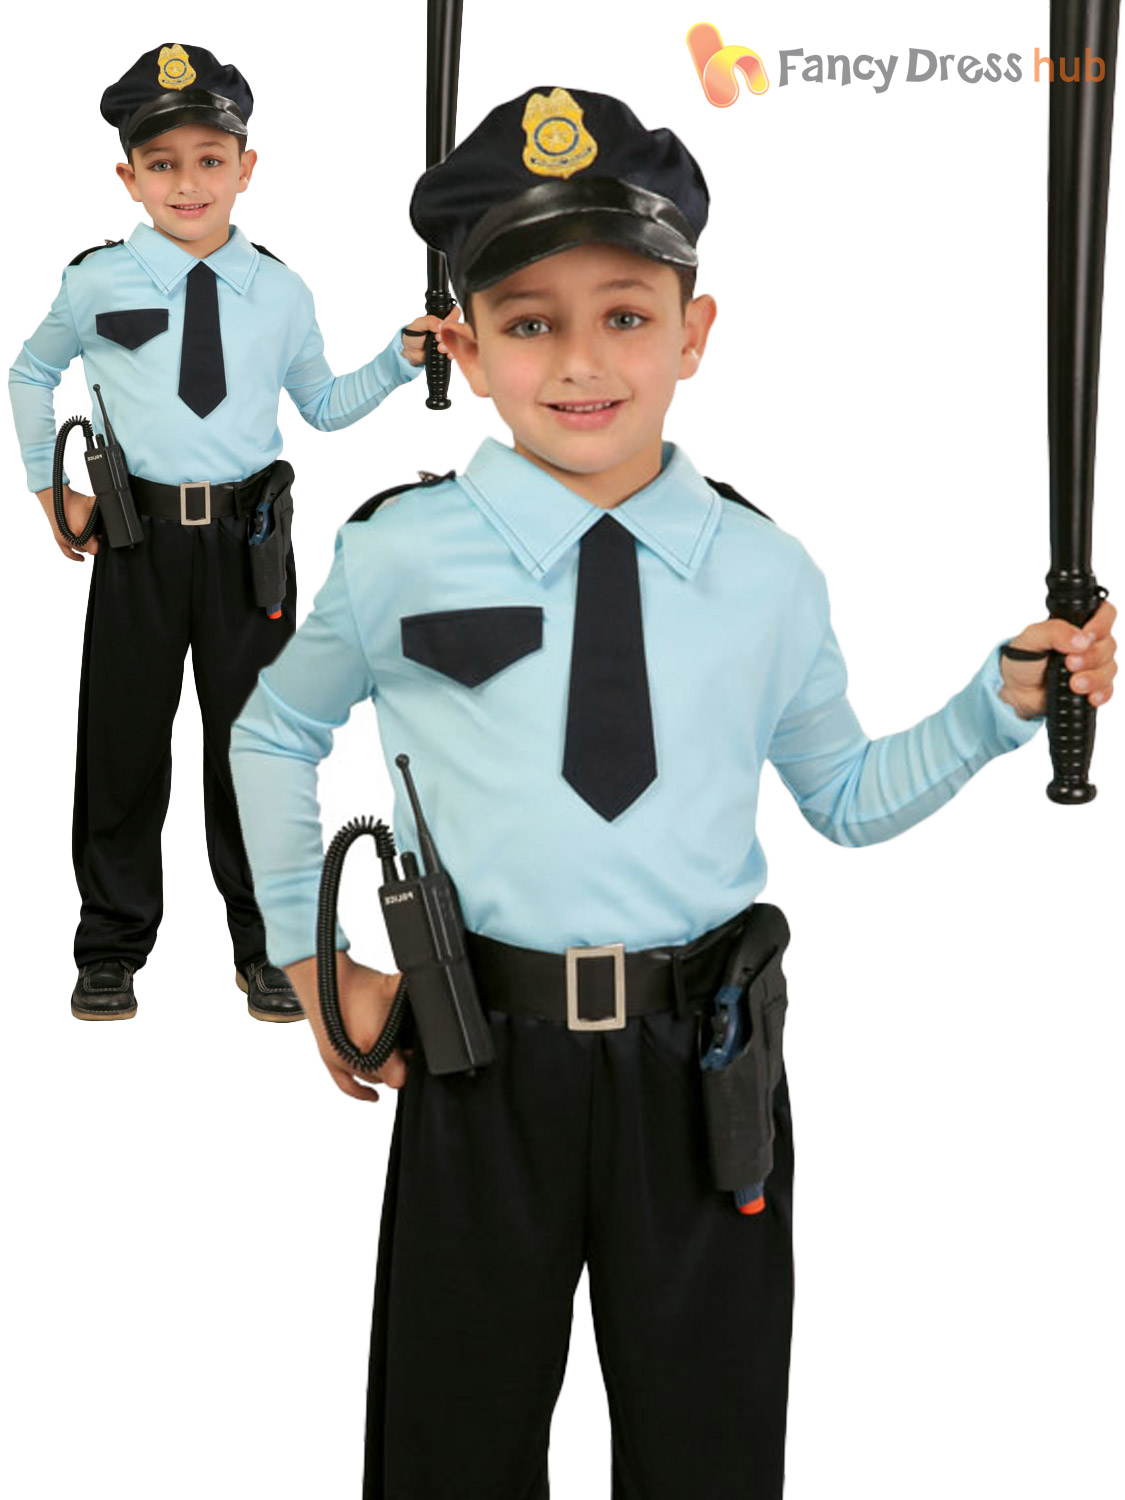 Boys police officer costume childs cop fancy dress kids uniform book week outfit ebay - Police officer child costume ...